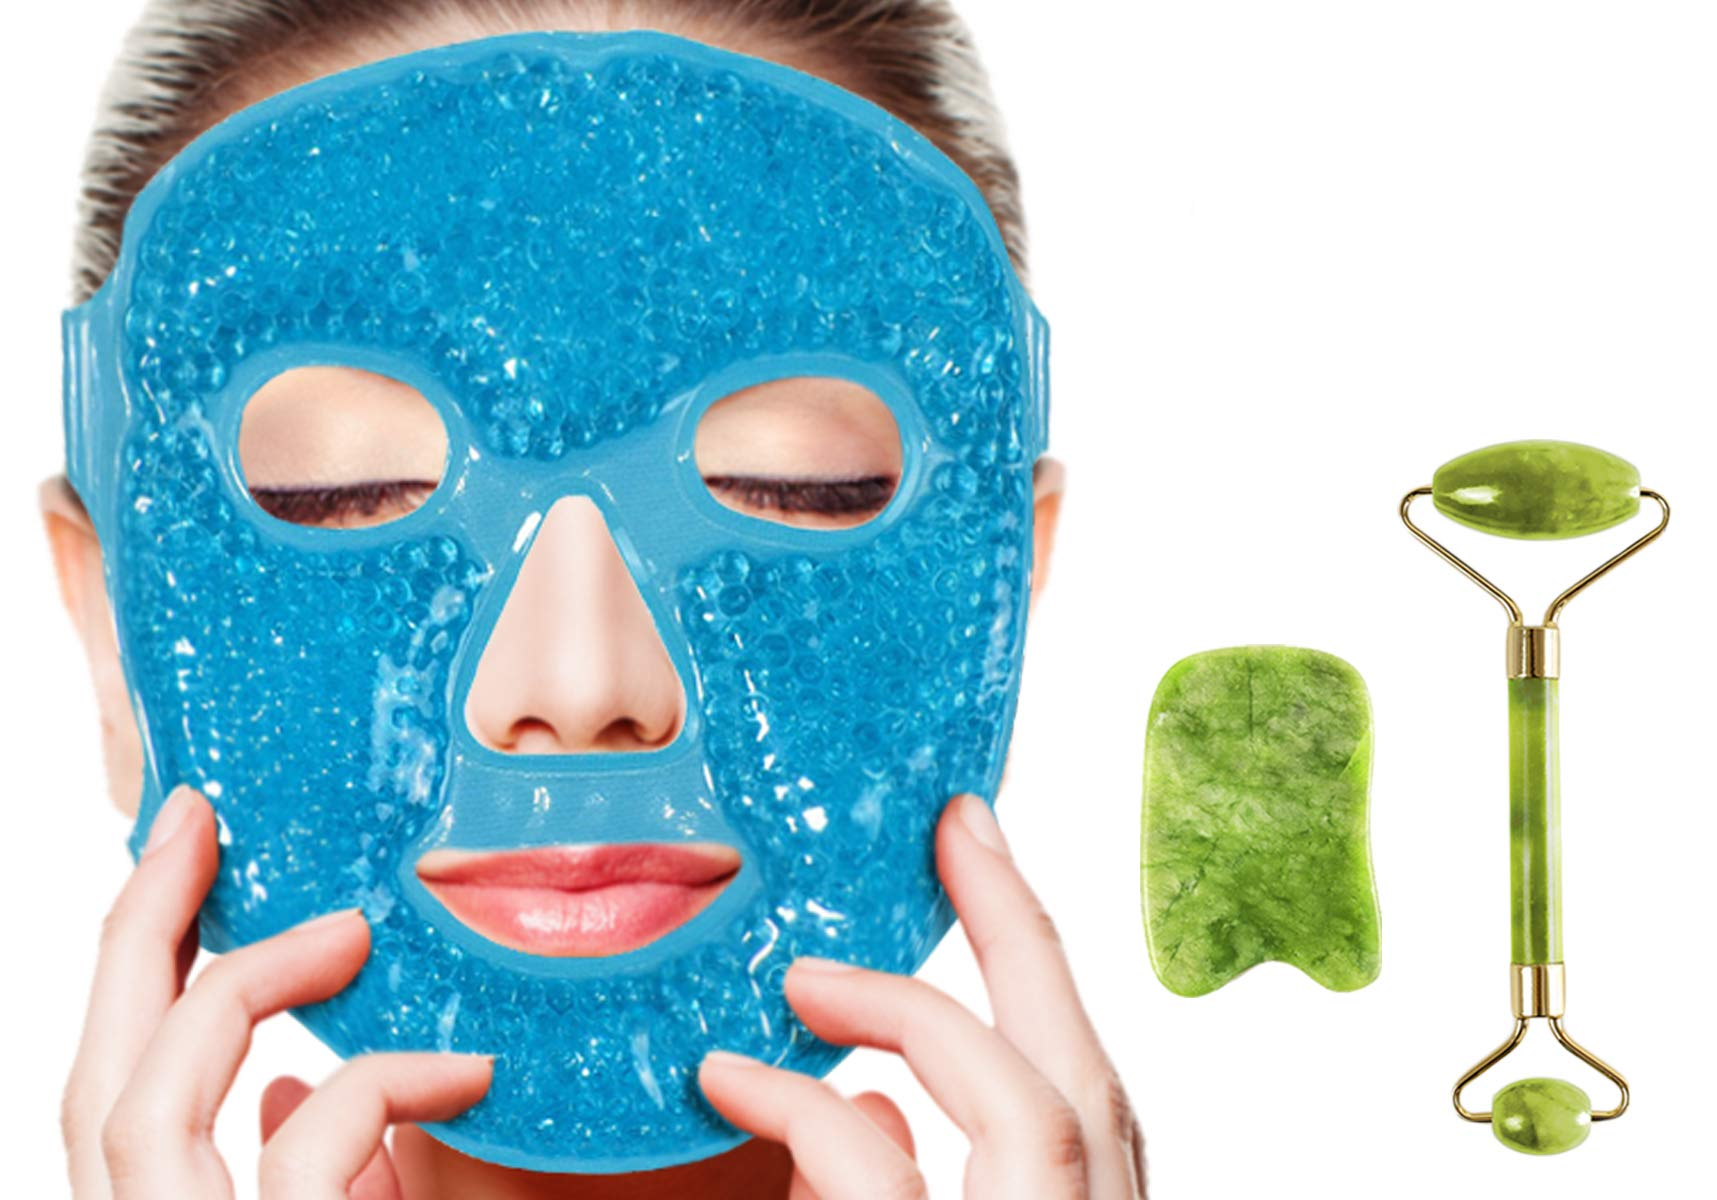 Face Eyes Gel Ice Mask with Jade Roller and GuaSha Tool,100% Real Ficial Ice Roller Anti Wrinkle Puffy Masks Therapy Pack Reusable Large for Face & Eye Puffiness Migraine Relief Gifts for Women